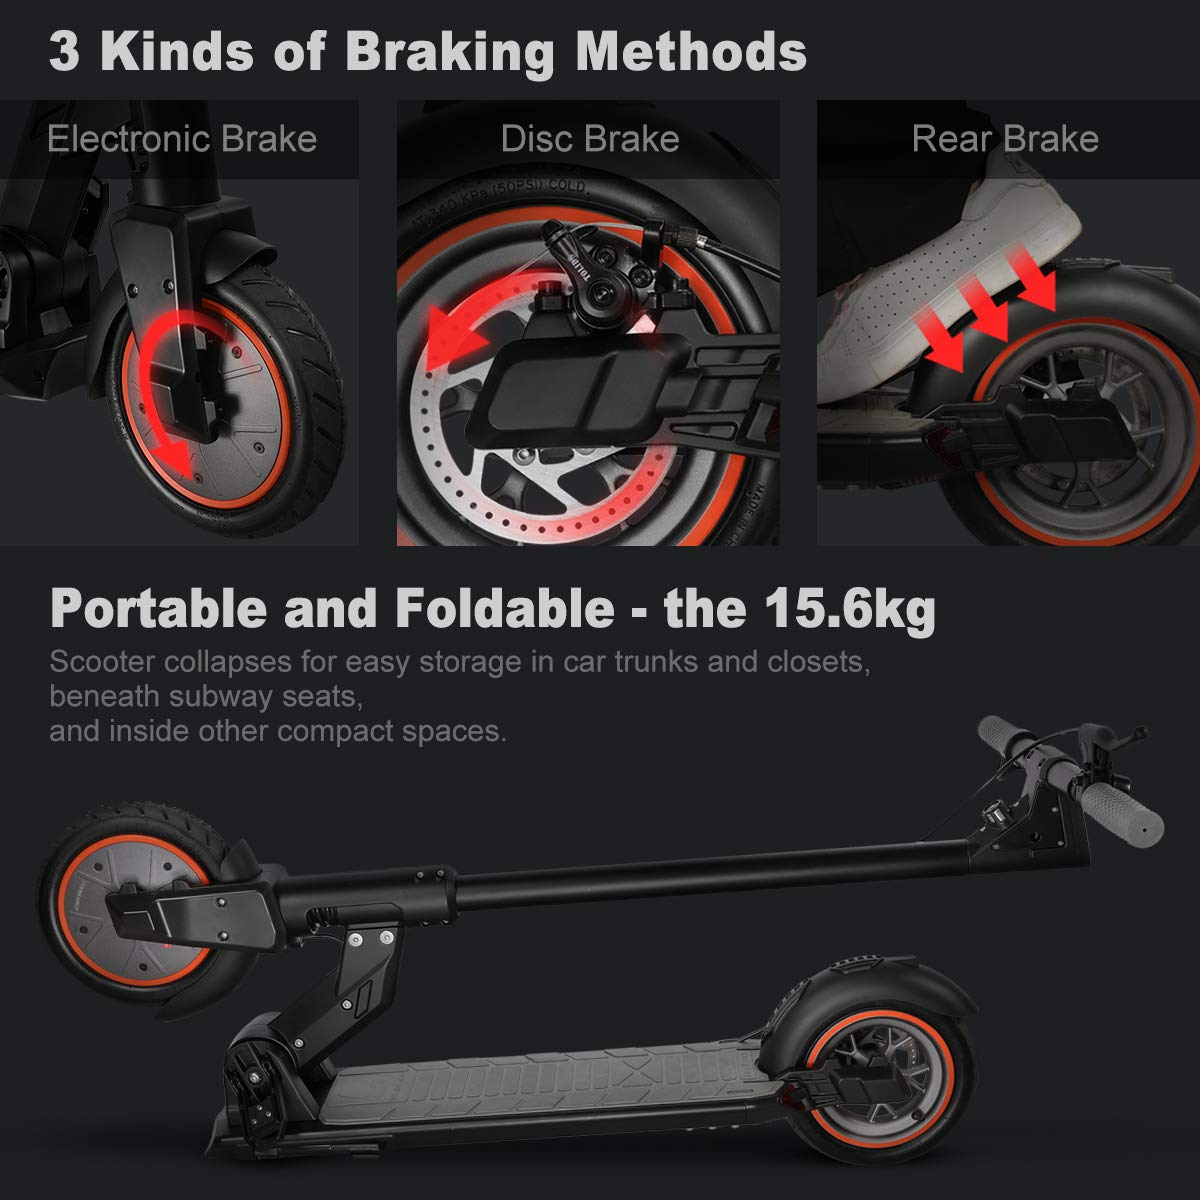 urbetter Kugoo M2 Pro Folding Electric Scooters Adults 350W Motor,3 Speed Adjustment Modes,LCD Display Screen 8.5 inches Solid Tires,18.6Miles Long Range Electric Kick Scooter with LED Light